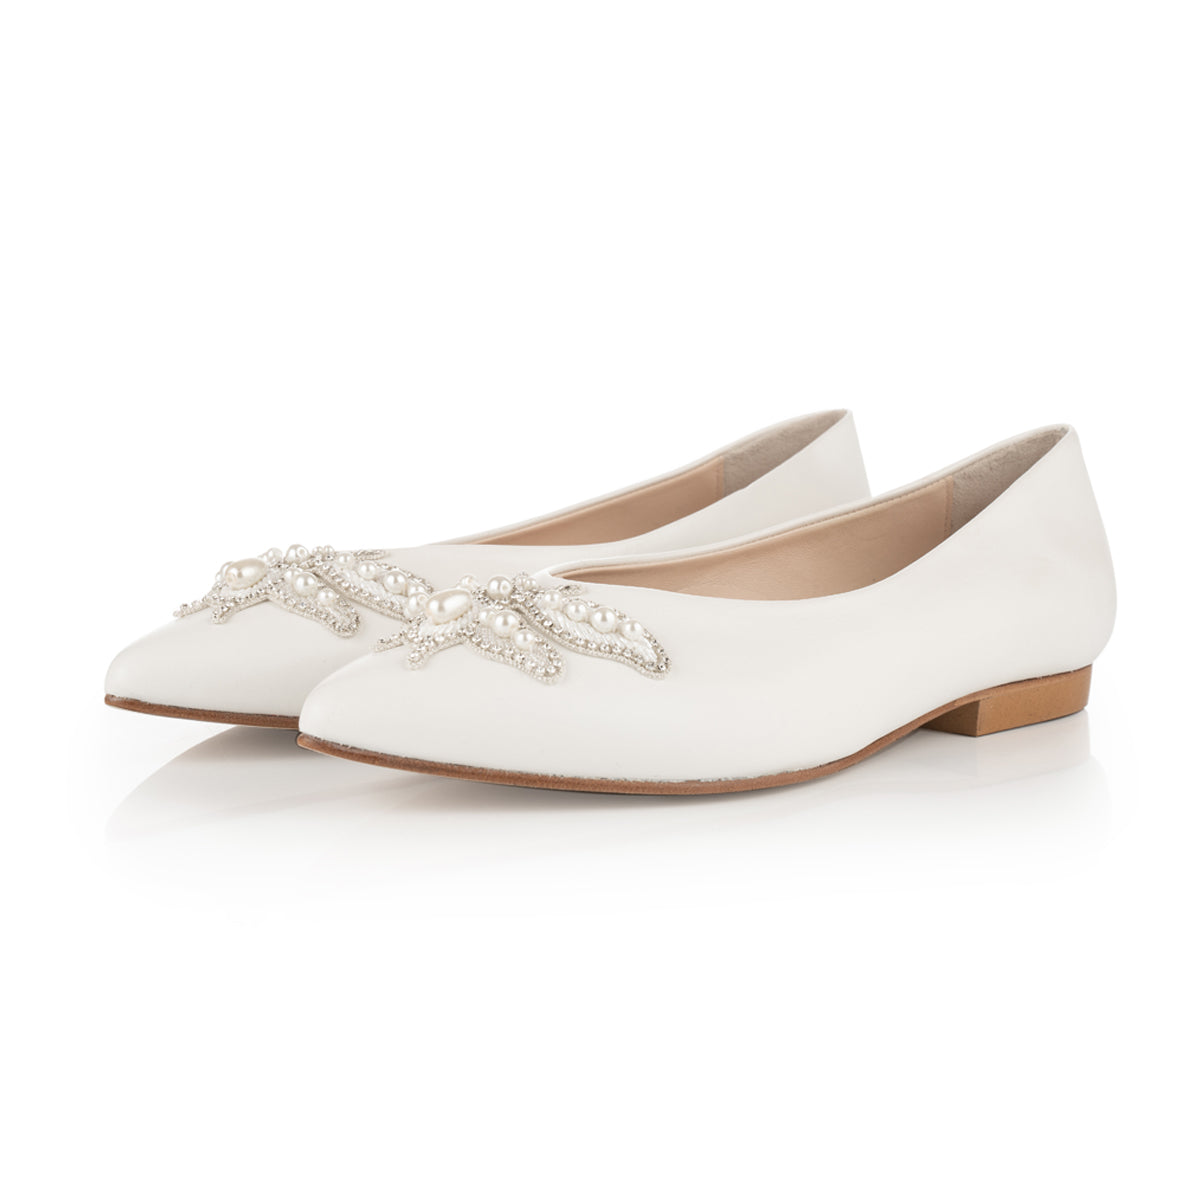 Wide fit ivory leather bridal Flats